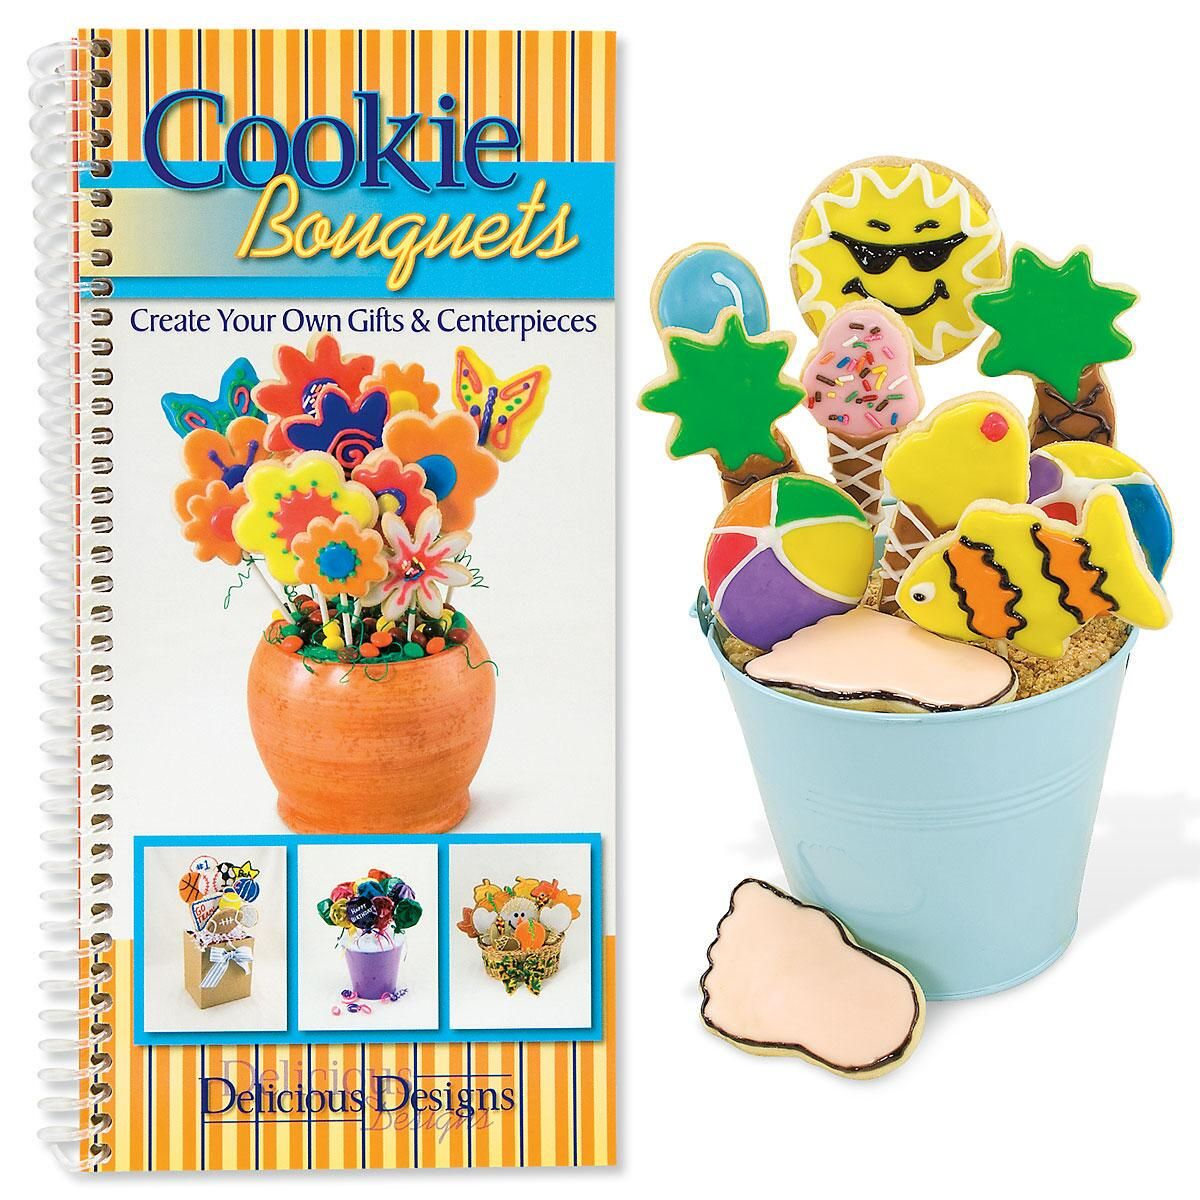 Edible Cookie Bouquets Book